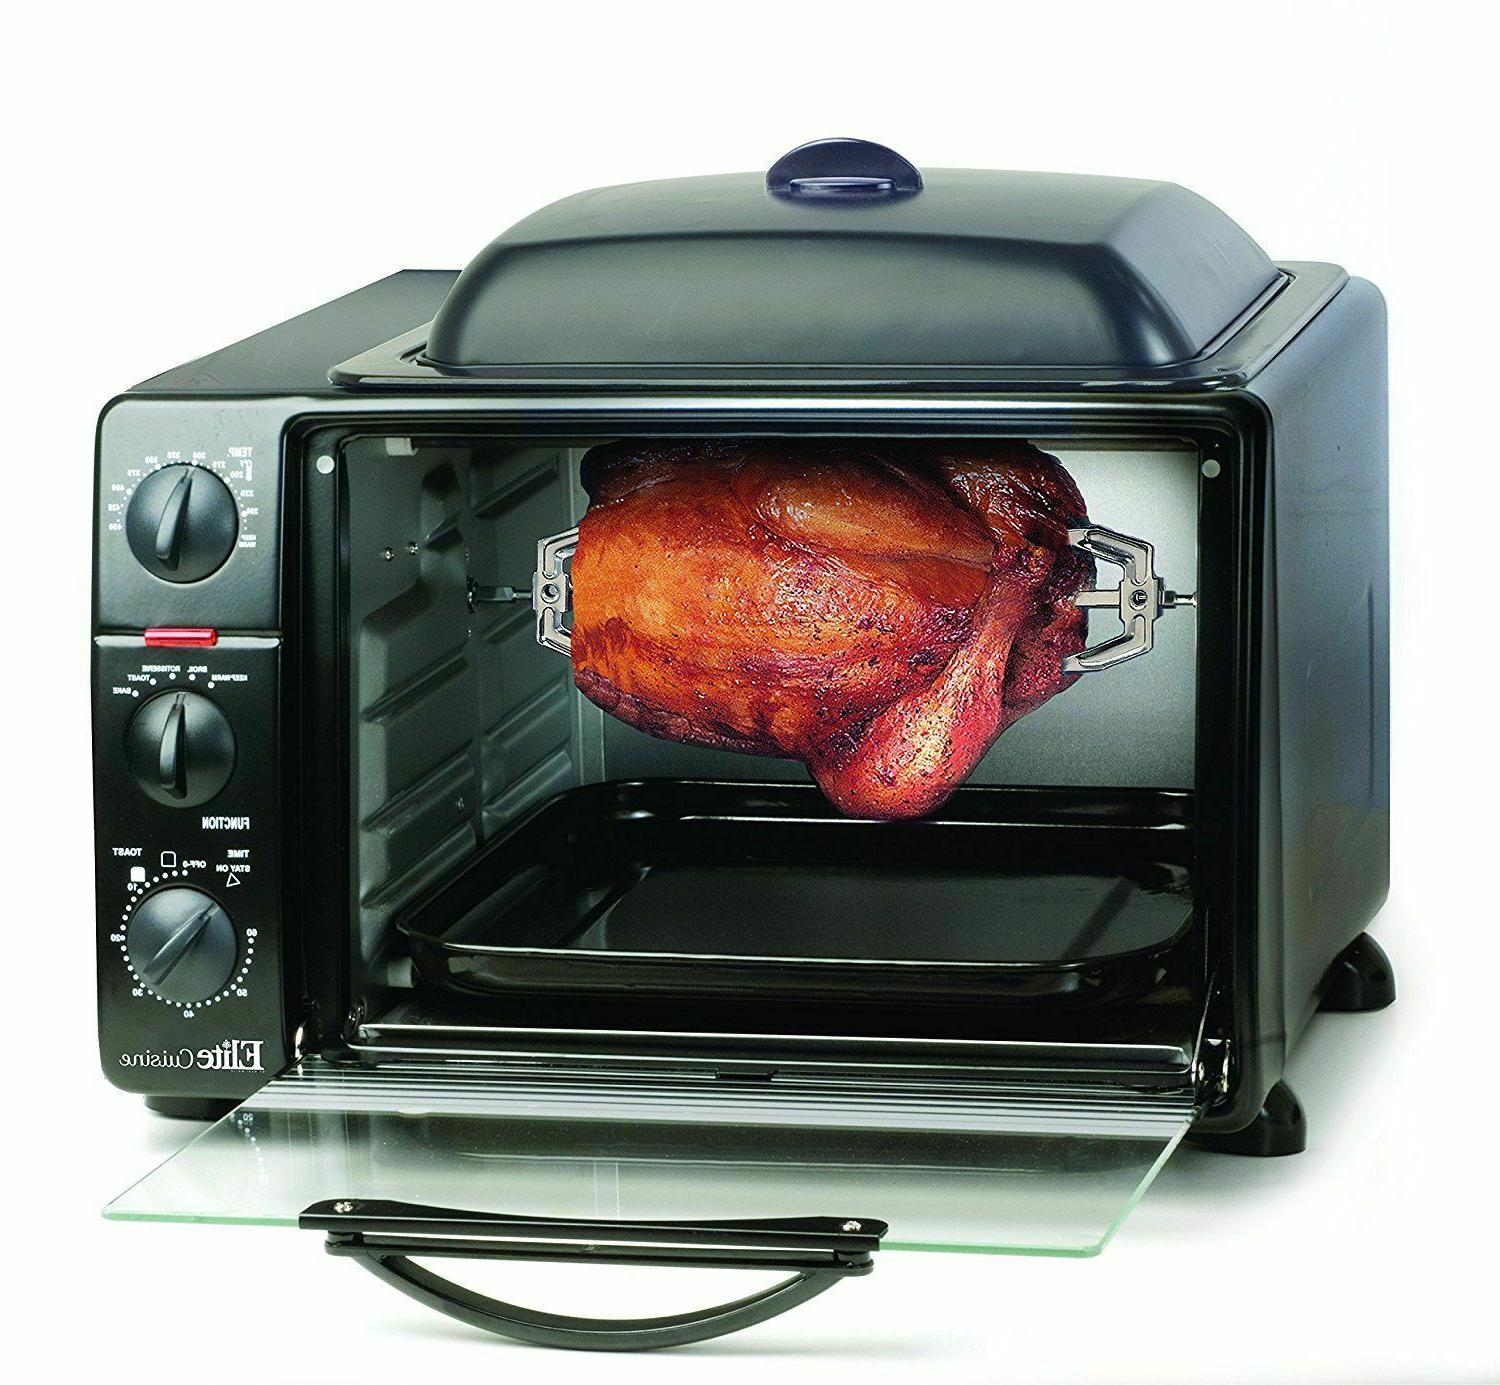 commercial electric convection oven bake cooking toaster